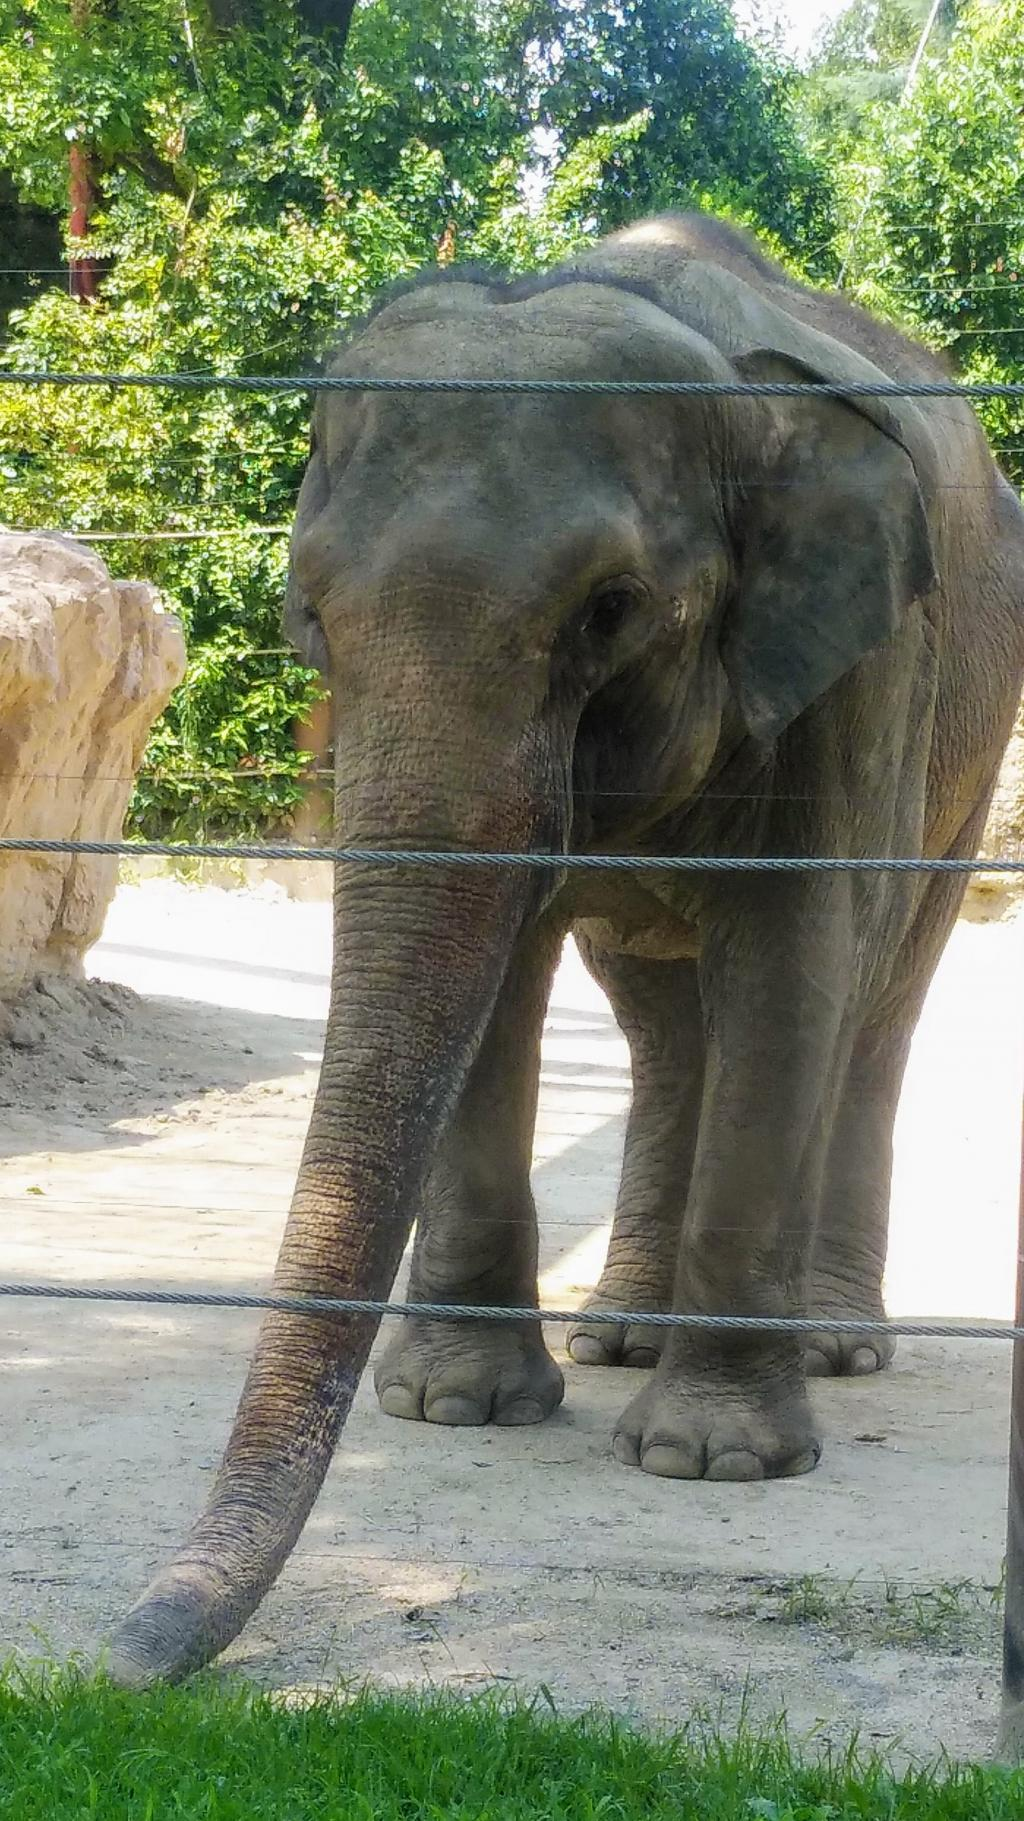 Elephant came to the town of Edo.